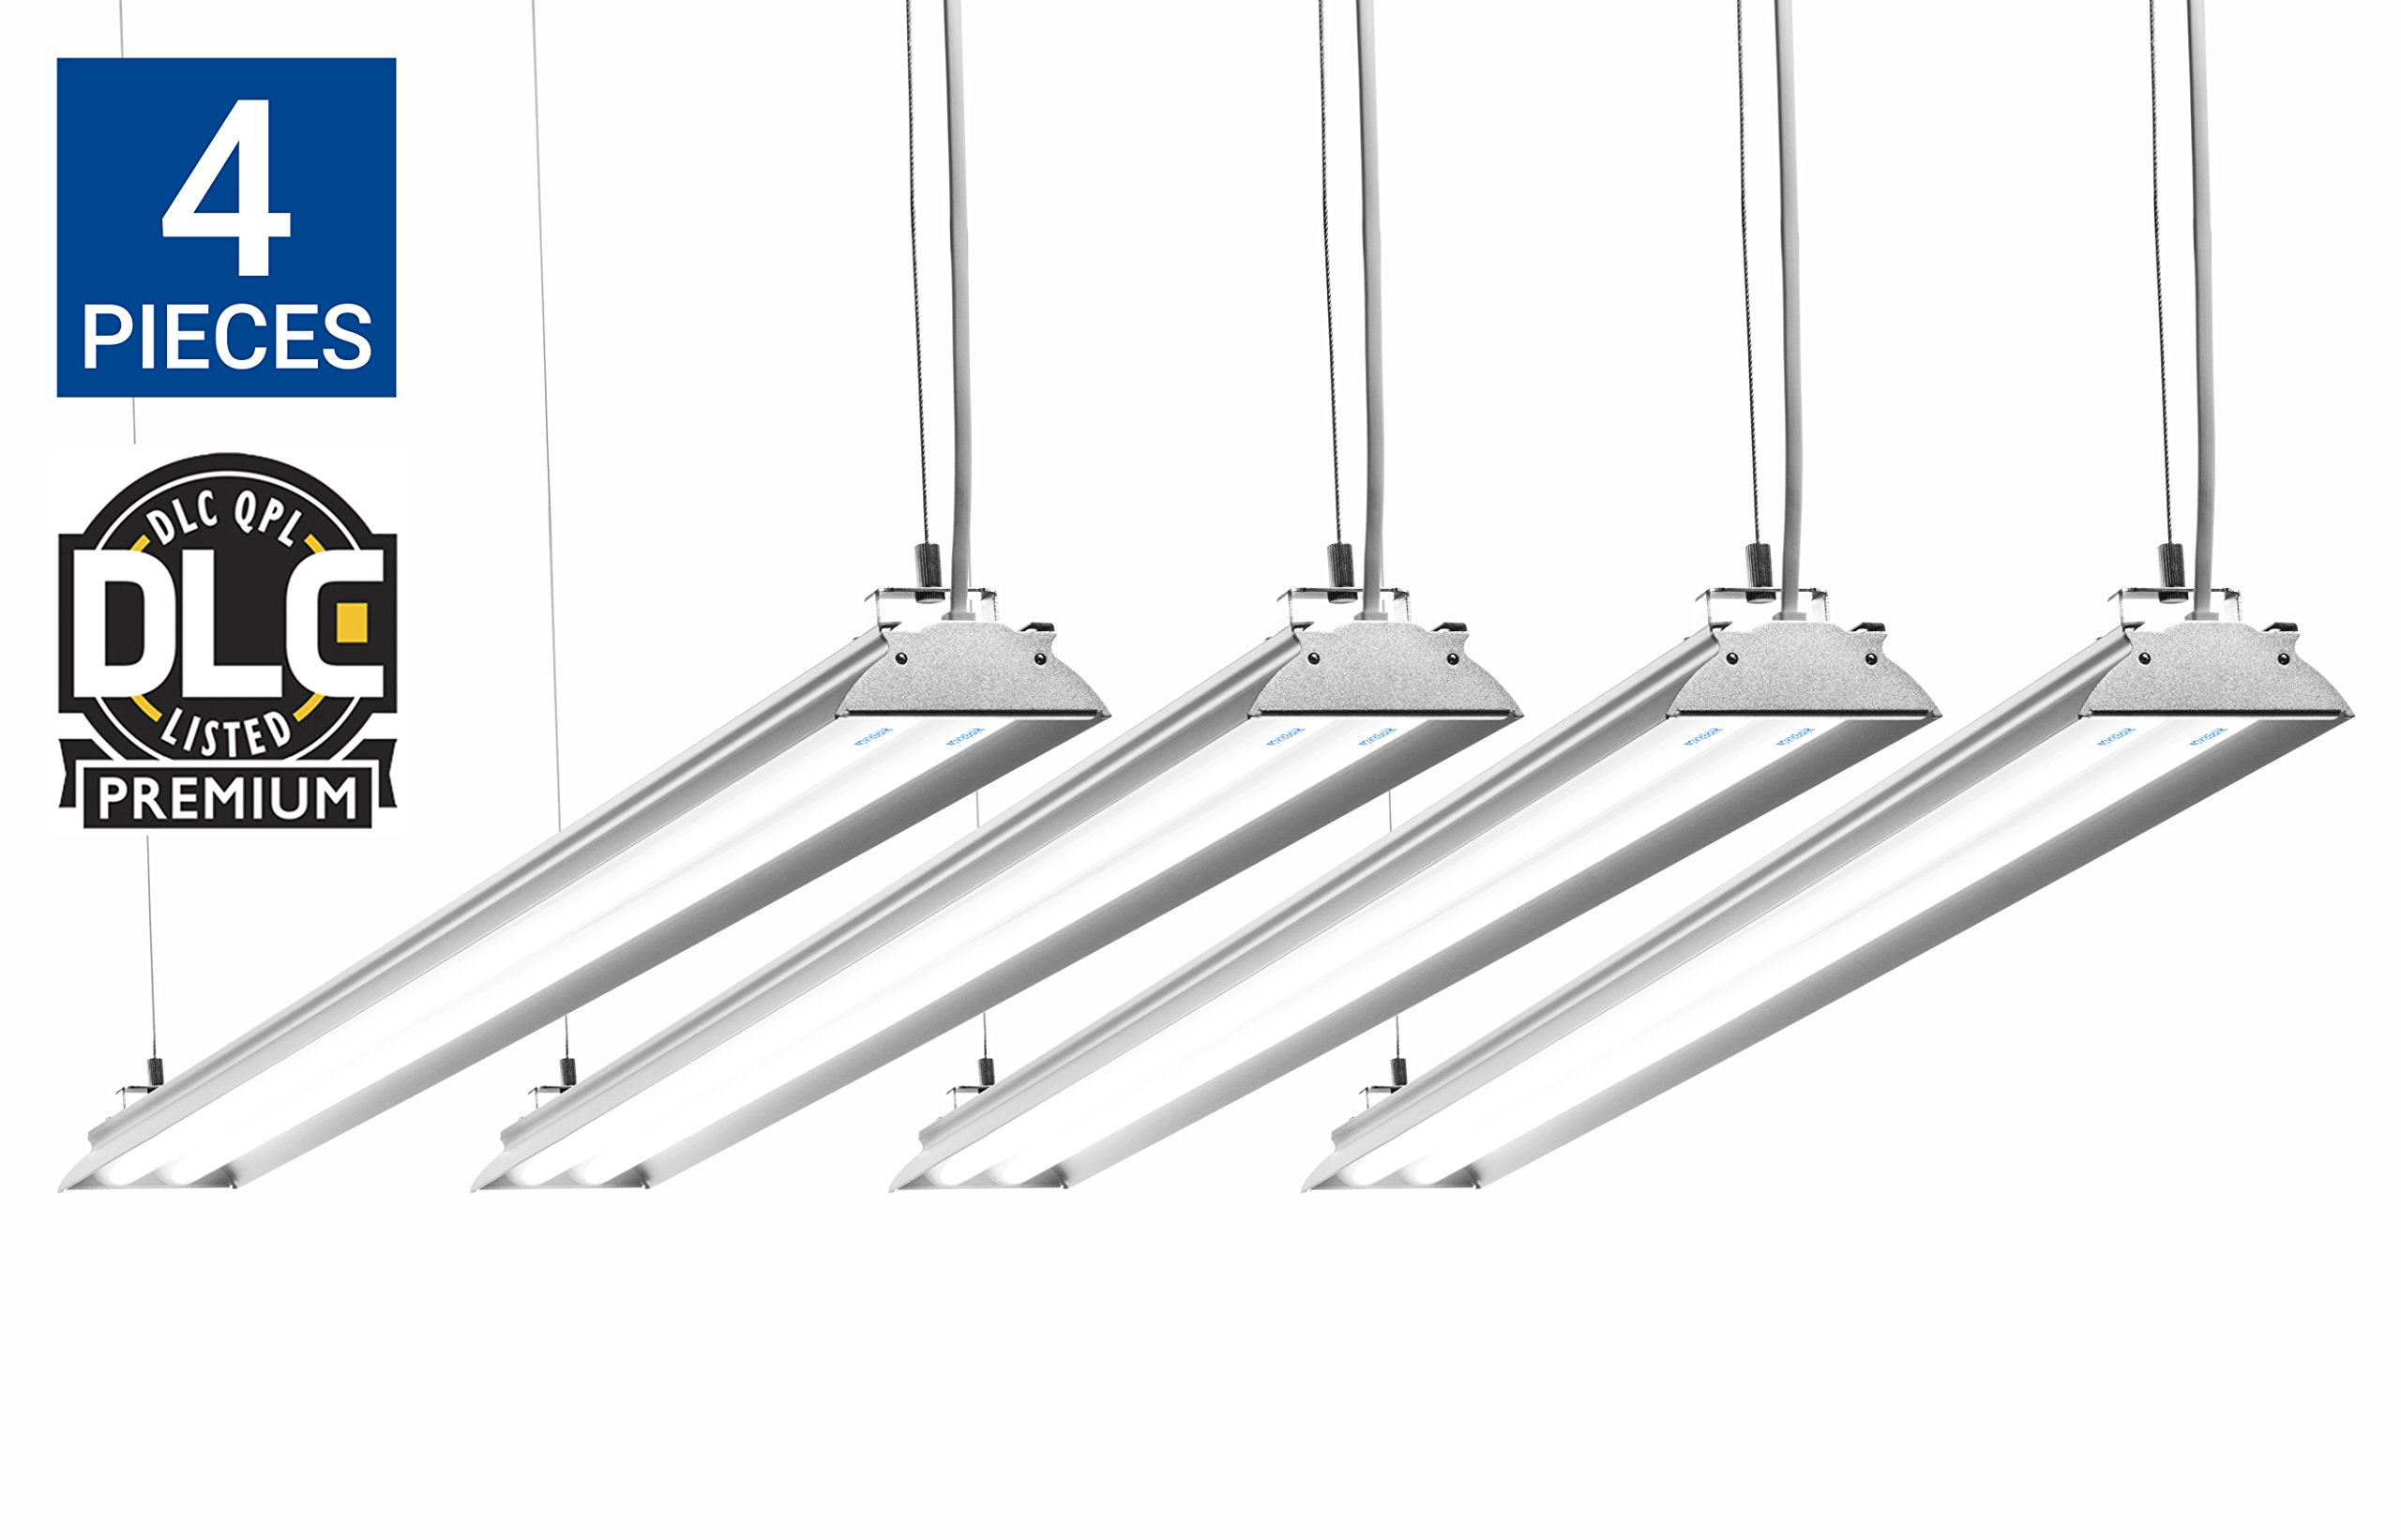 HyperSelect Utility LED Shop Light, 4FT Integrated LED Fixture Garage Light, DLC 4.2 Premium Qualified, 35W (100W Eq.), 3800 Lumens, 5000K (Crystal White Glow), Frosted Cover - Pack of 4